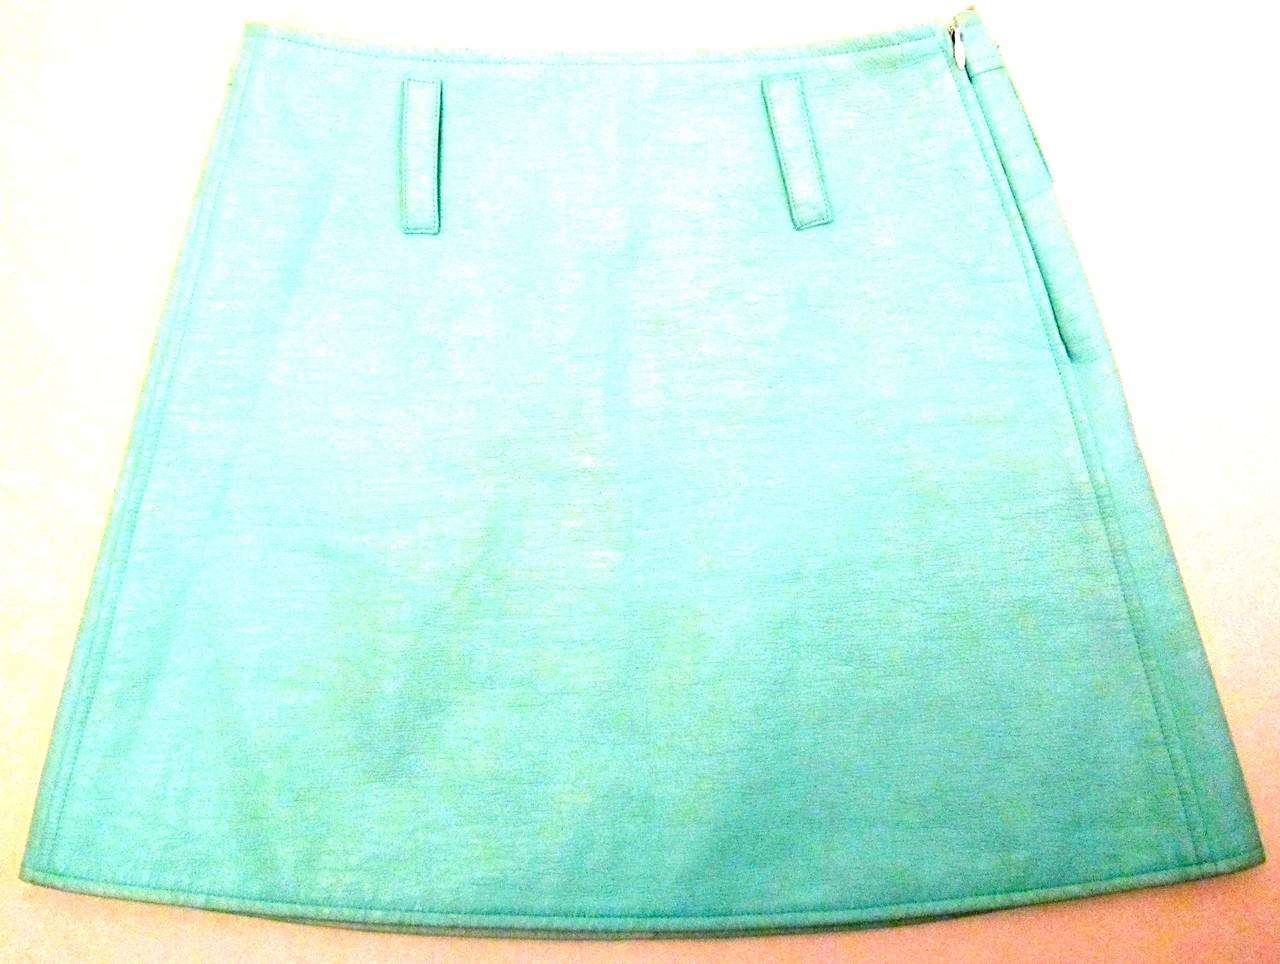 Well, this is why I love Courreges! This lovely sea foam / aqua mini skirt makes you feel like you are Sharon Stone in the movie Casino! This patent skirt is in mint condition. It is from Courreges Paris and is marked a size 34. It is made in France